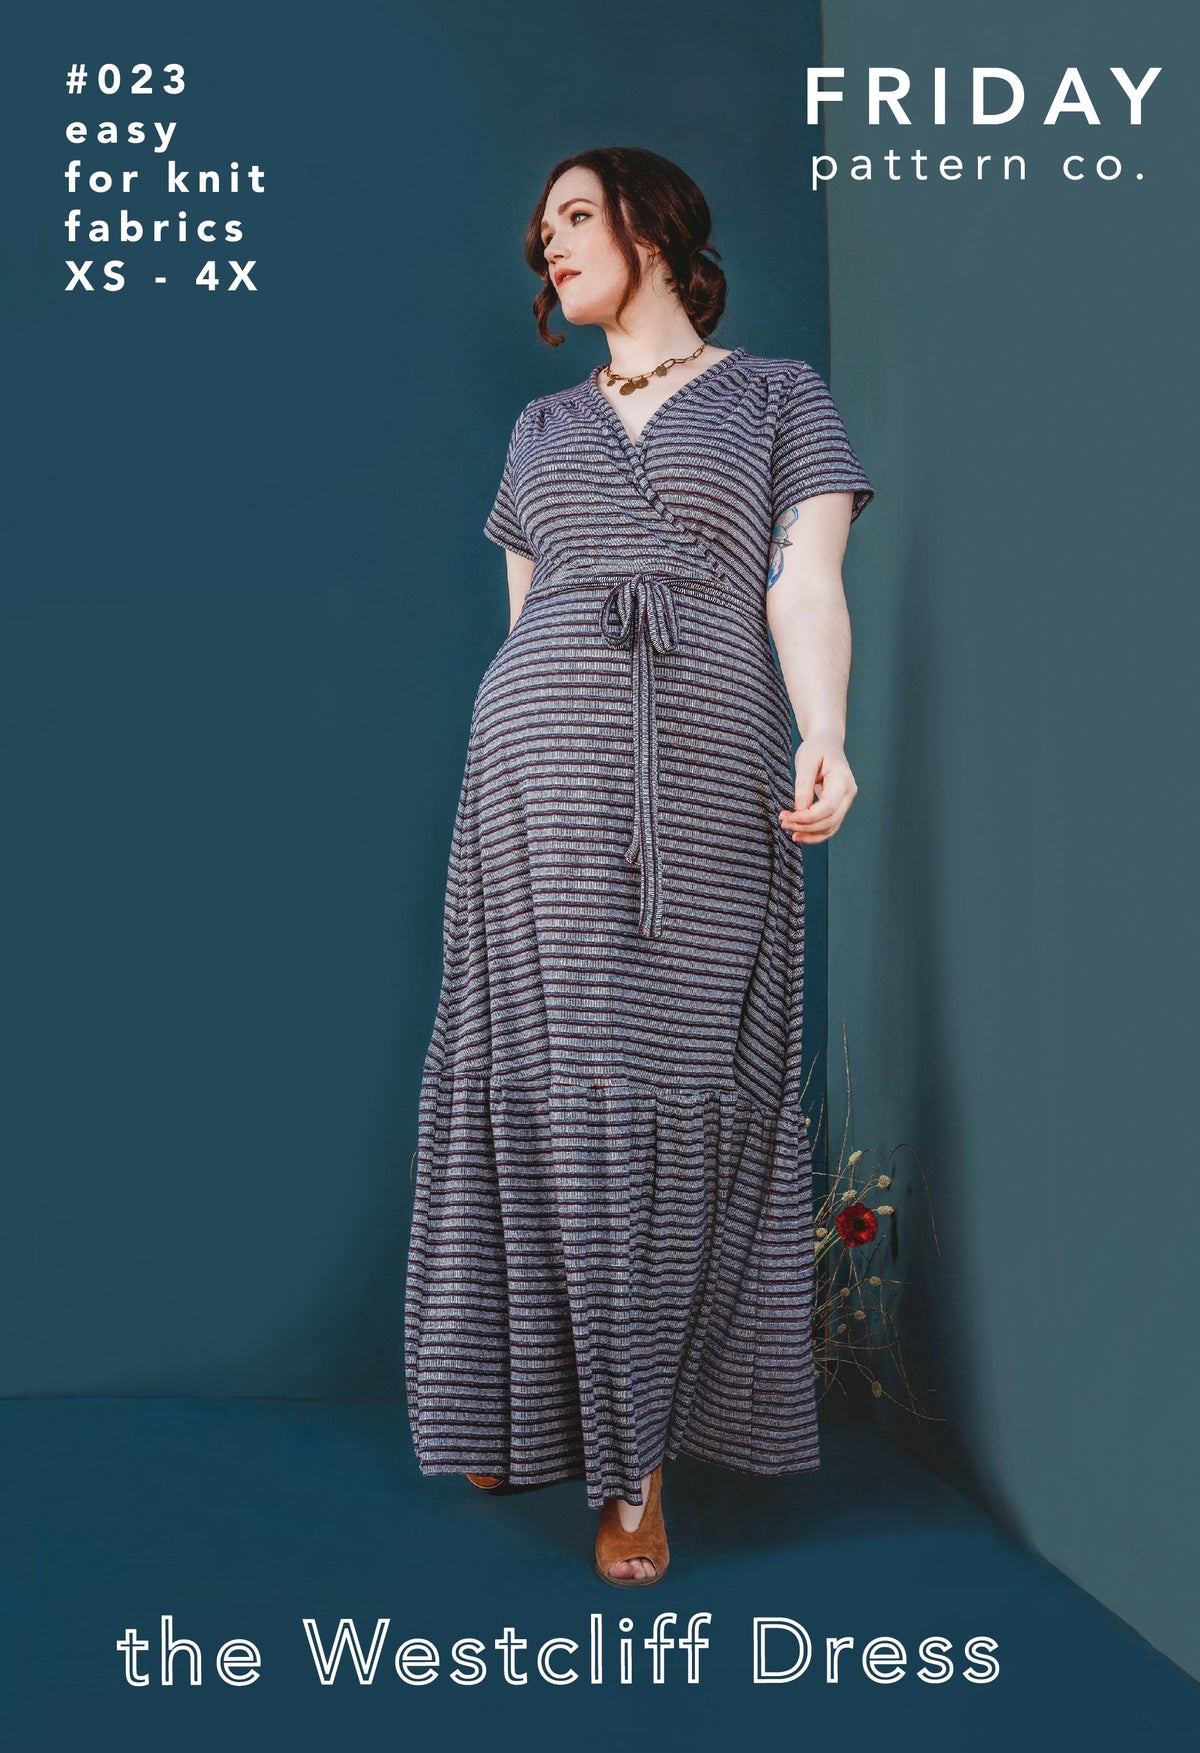 Westcliff Dress Pattern - Friday Pattern Company - MaaiDesign